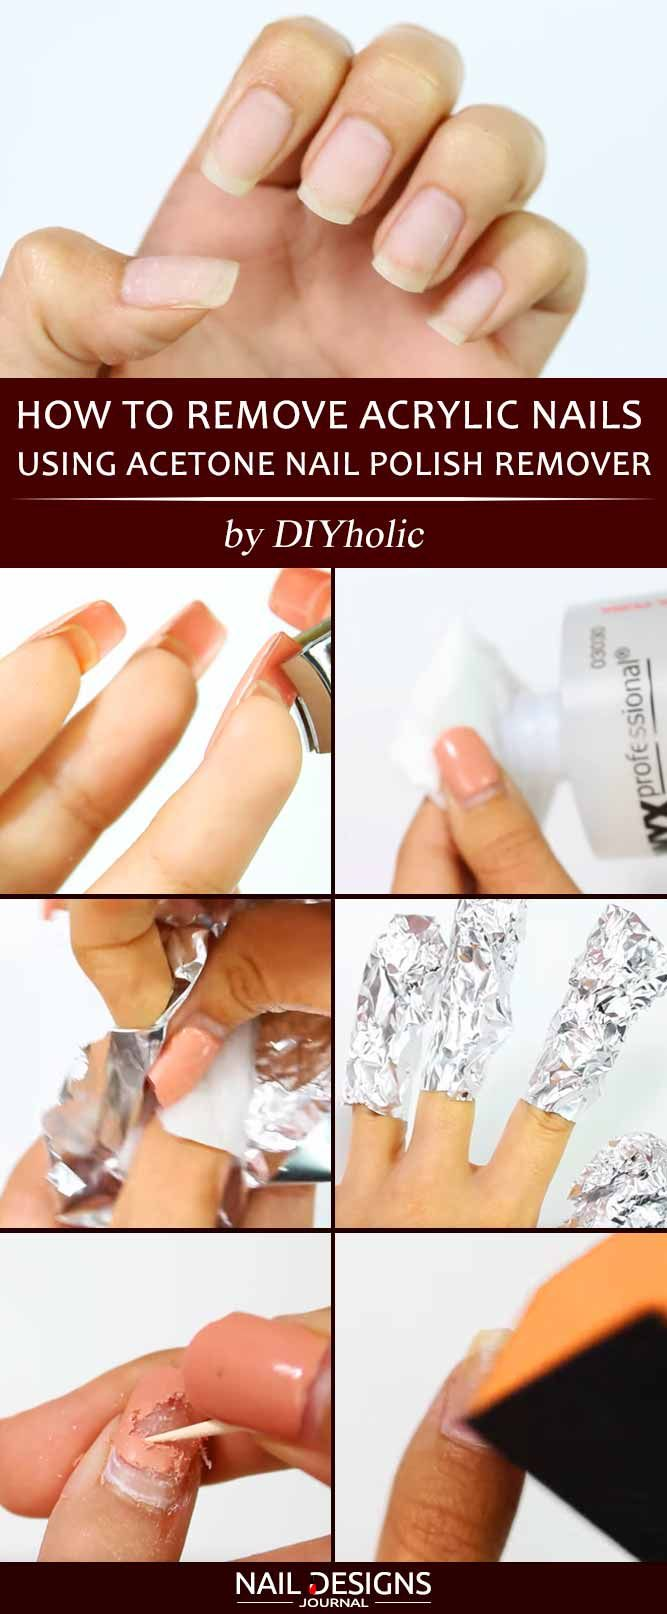 Learn How To Remove Acrylic Nails Naildesignsjournal In 2020 Remove Acrylic Nails Take Off Acrylic Nails Acrylic Nails At Home